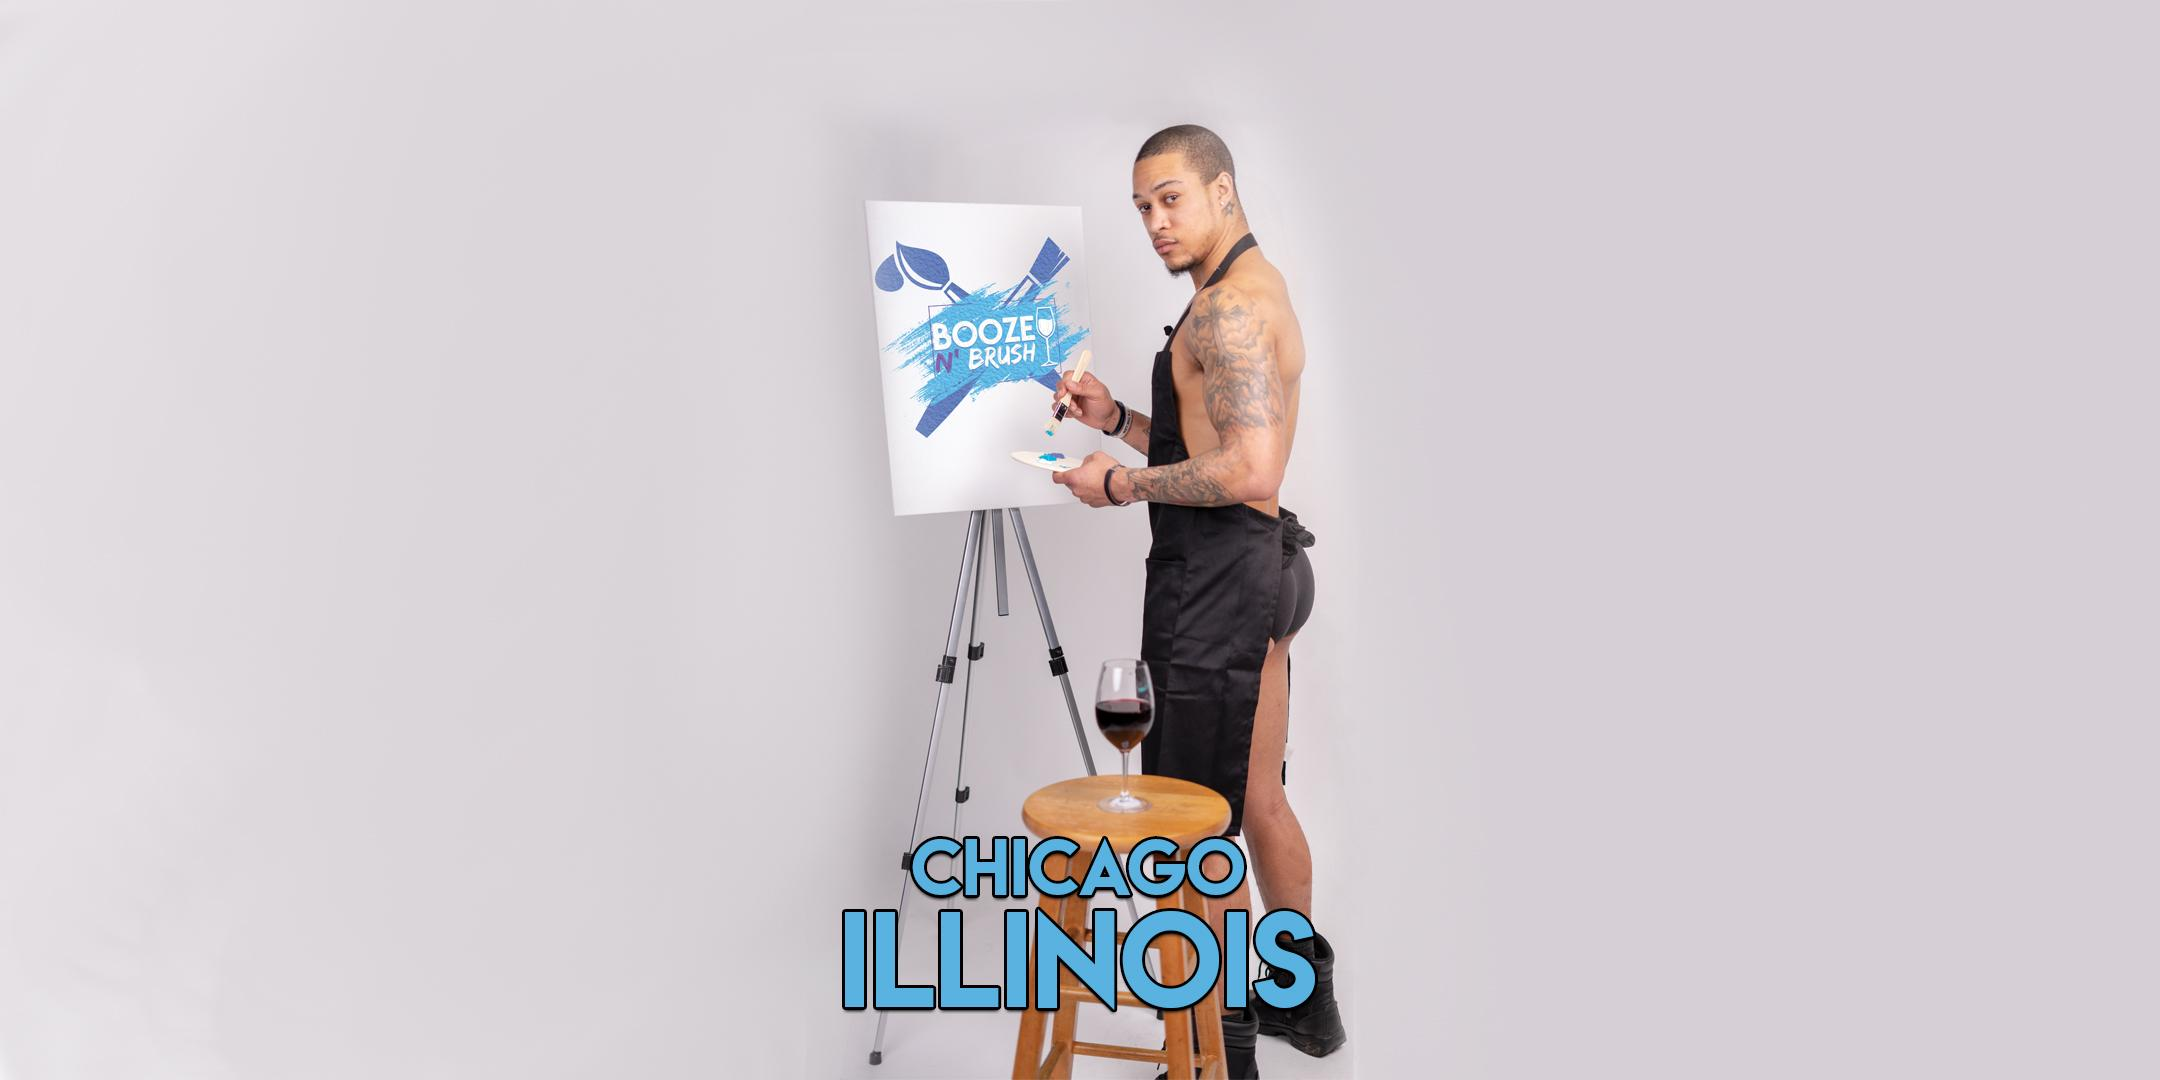 Booze N' Brush Next to Naked Sip n' Paint Chicago, IL - Exotic Male Model Painting Event